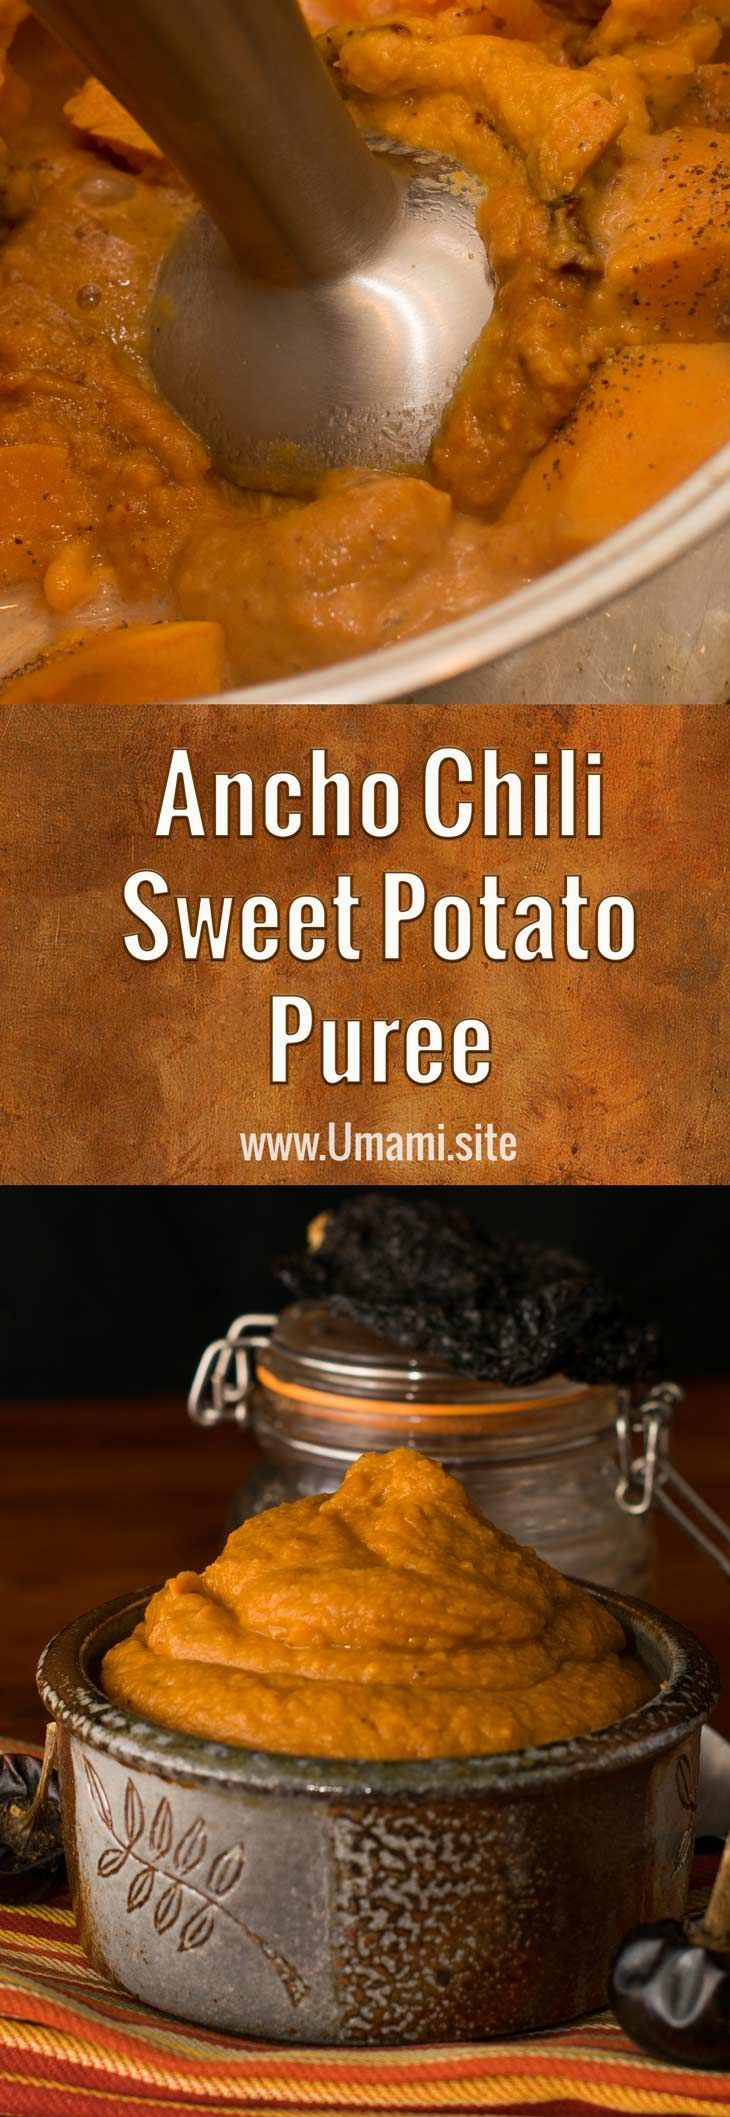 Ancho chilies, sweet potatoes, and honey come together to create a sweet potato puree with rich, complex Southwestern flavors. This sweet potato puree recipe is an excellent choice when you're looking for a side dish with interesting flavors and textures. #chilies #sweetpotatoes #sidedish #recipes